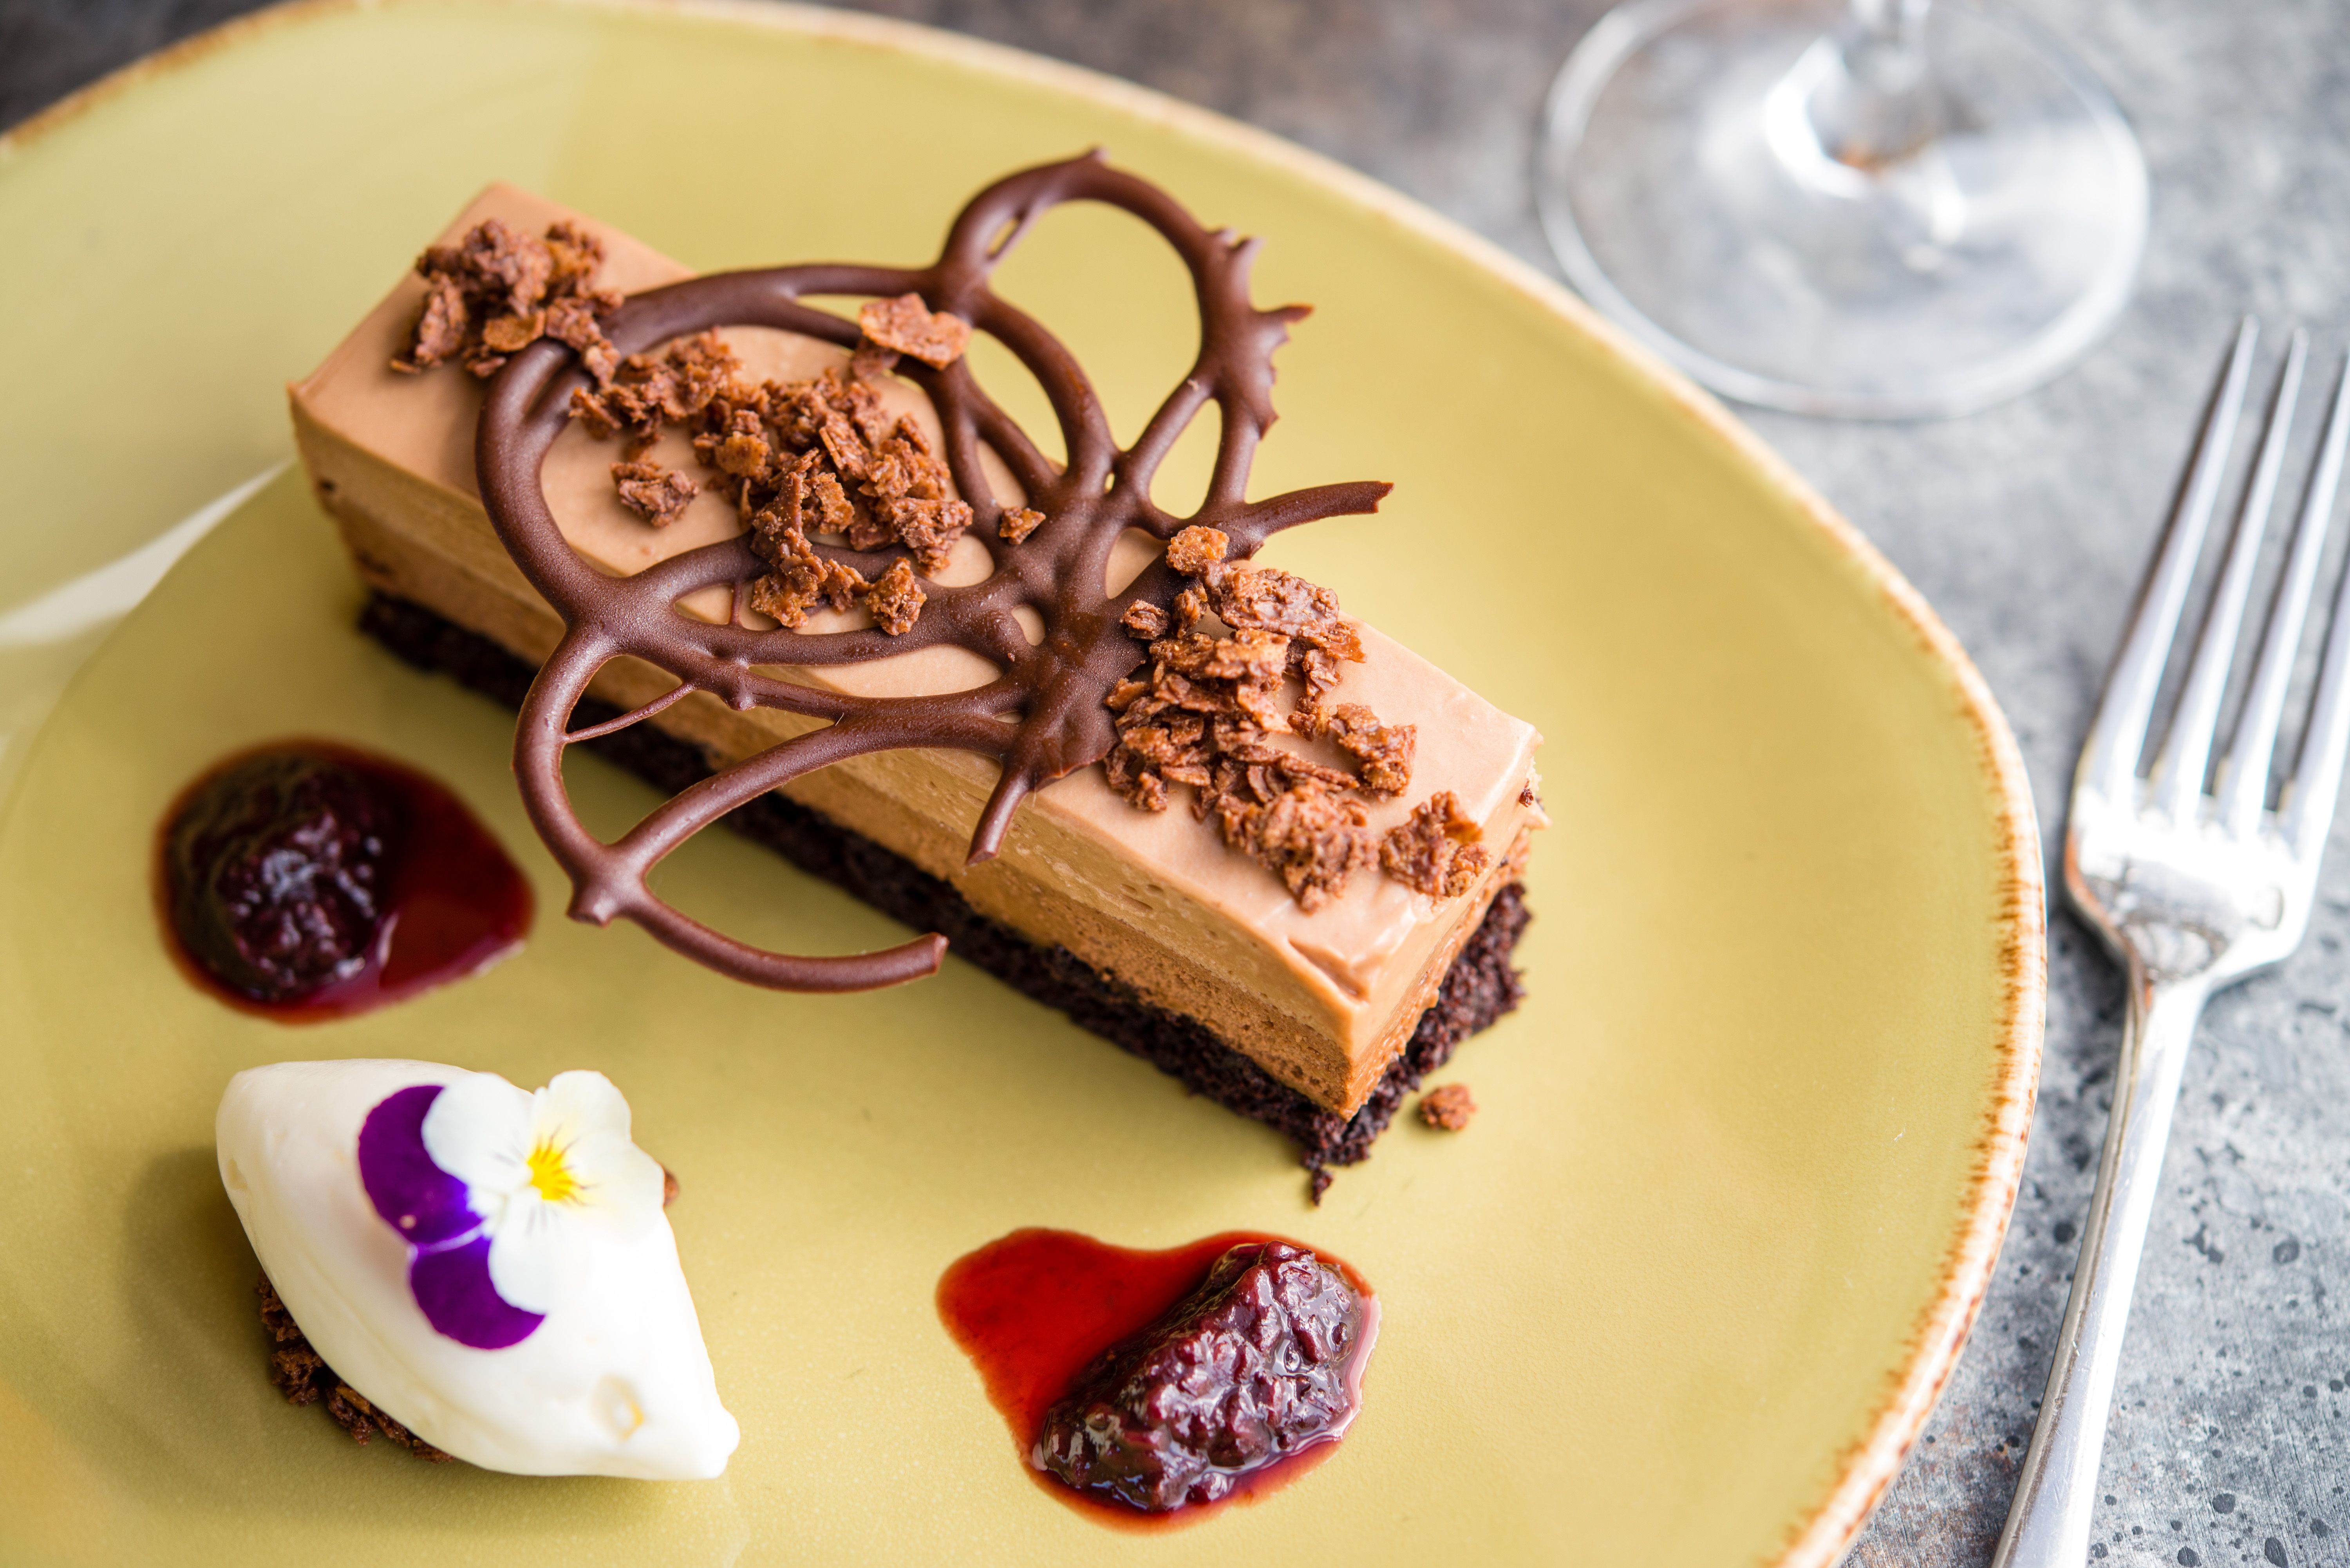 Catal restaurant in downtown disney debuts new 3course